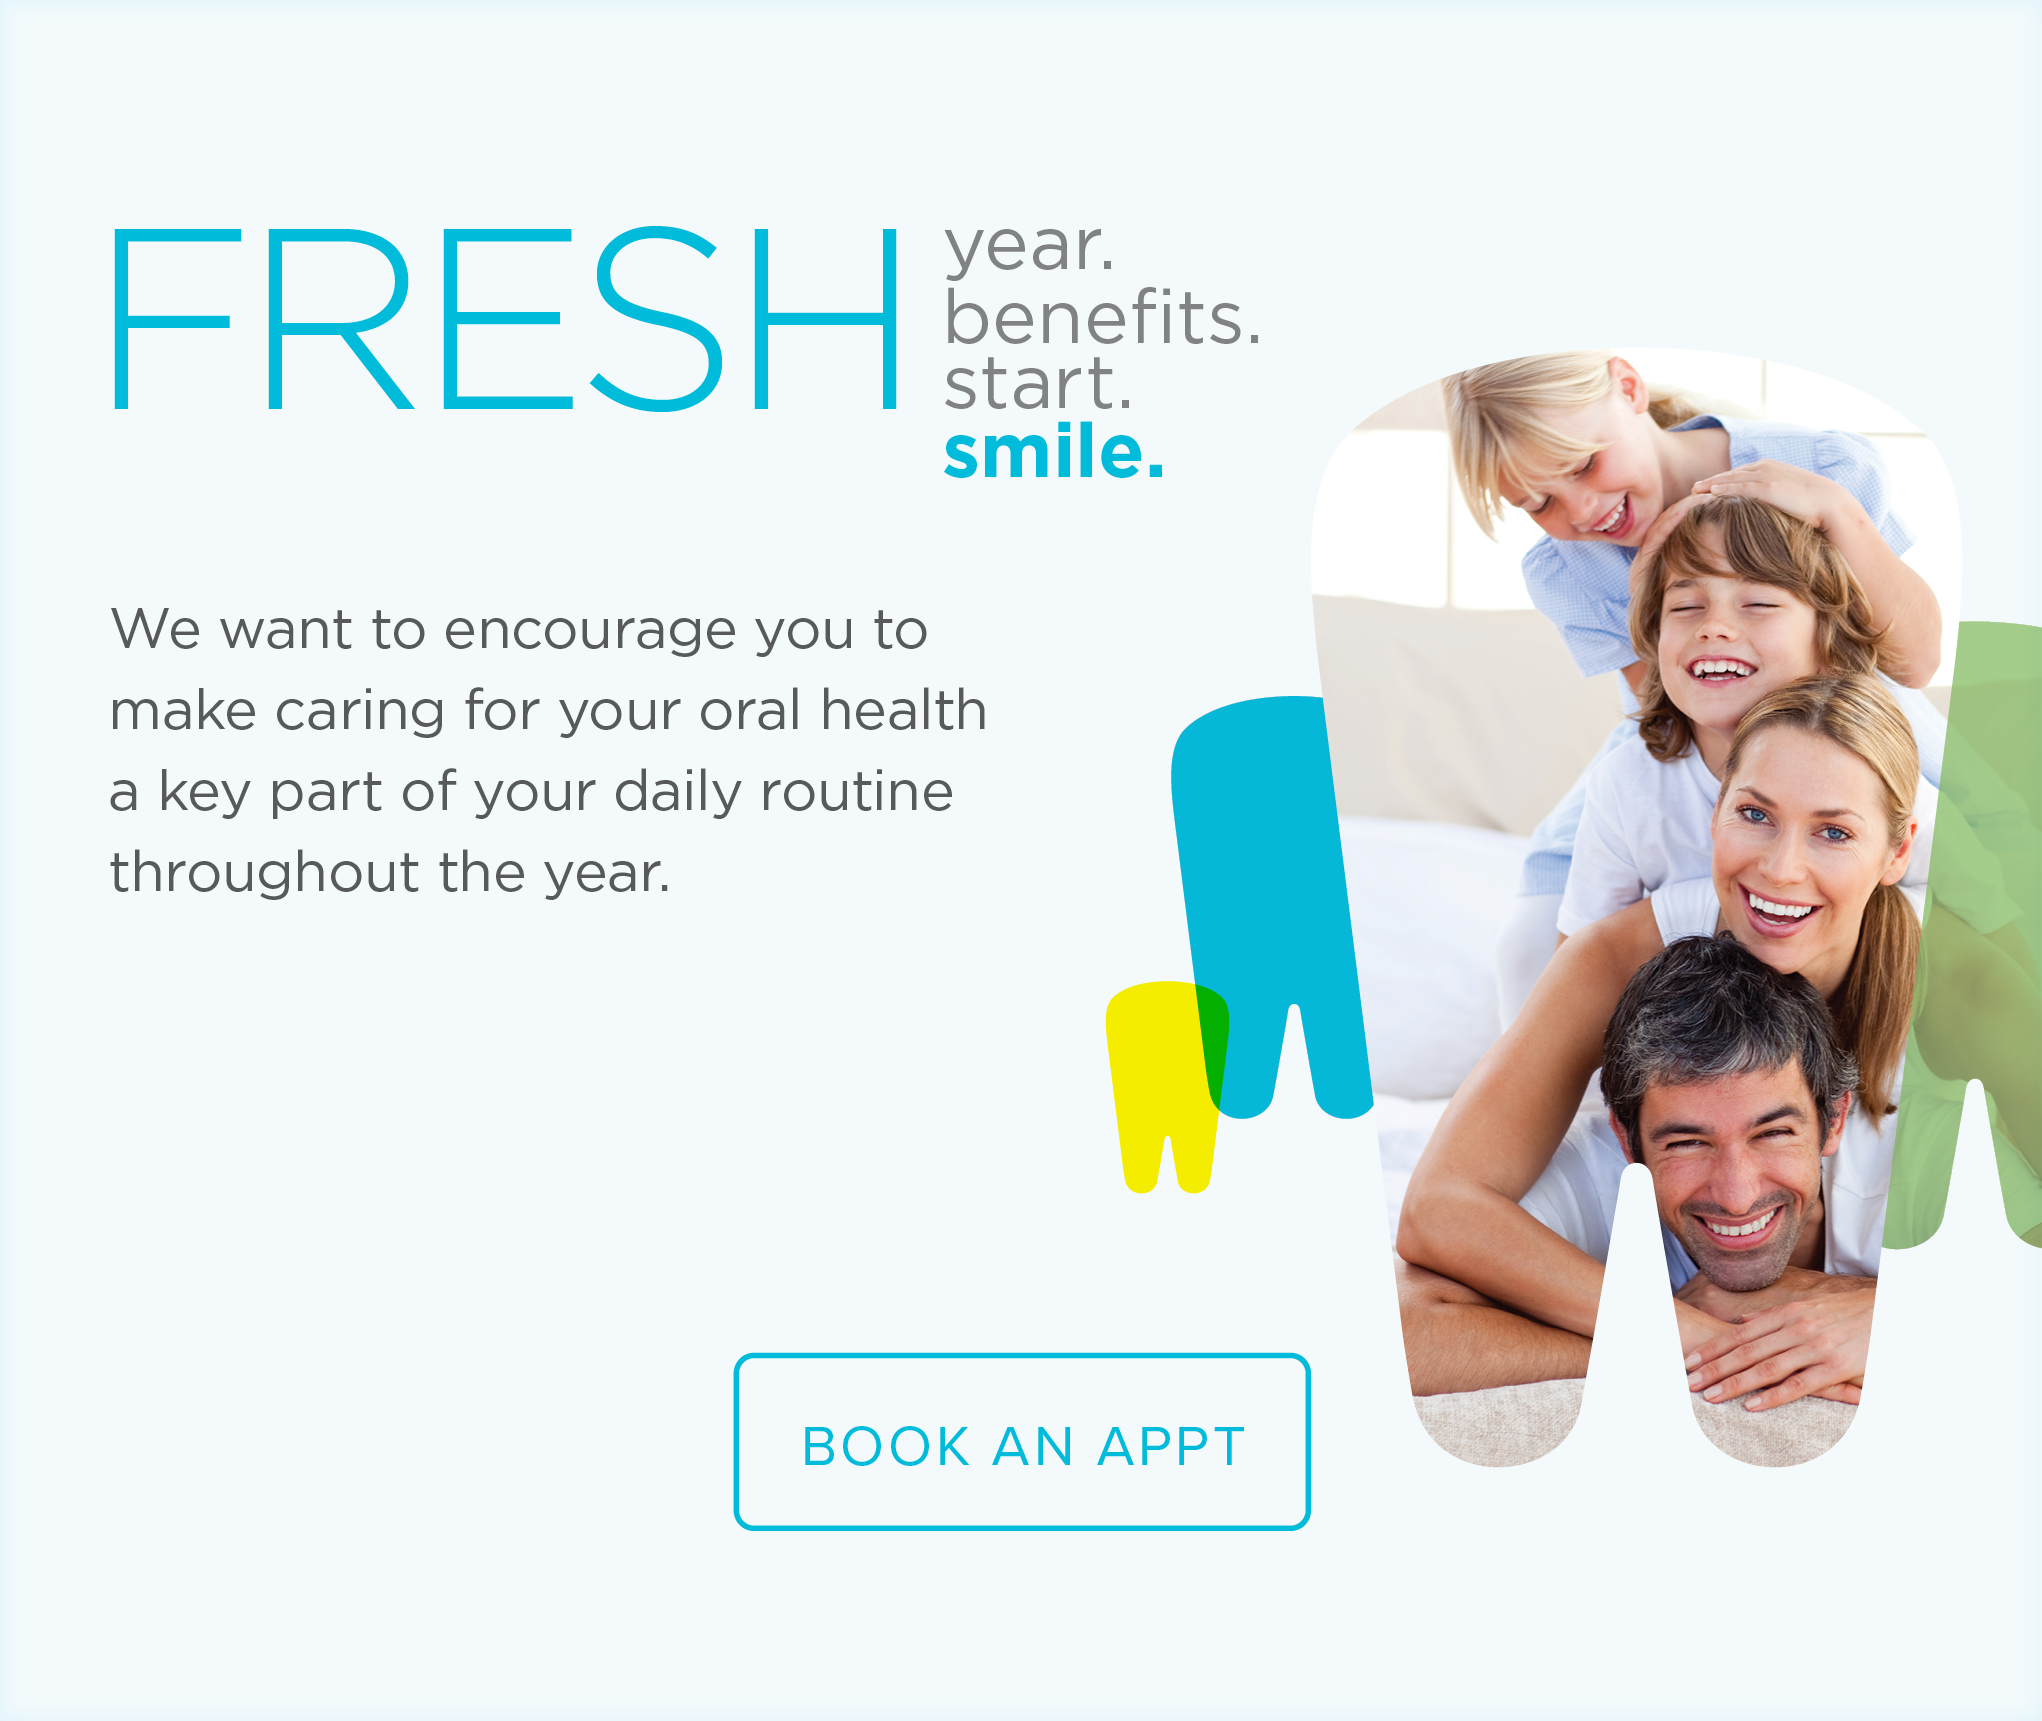 Canyon Springs Dental Group and Orthodontics - Make the Most of Your Benefits